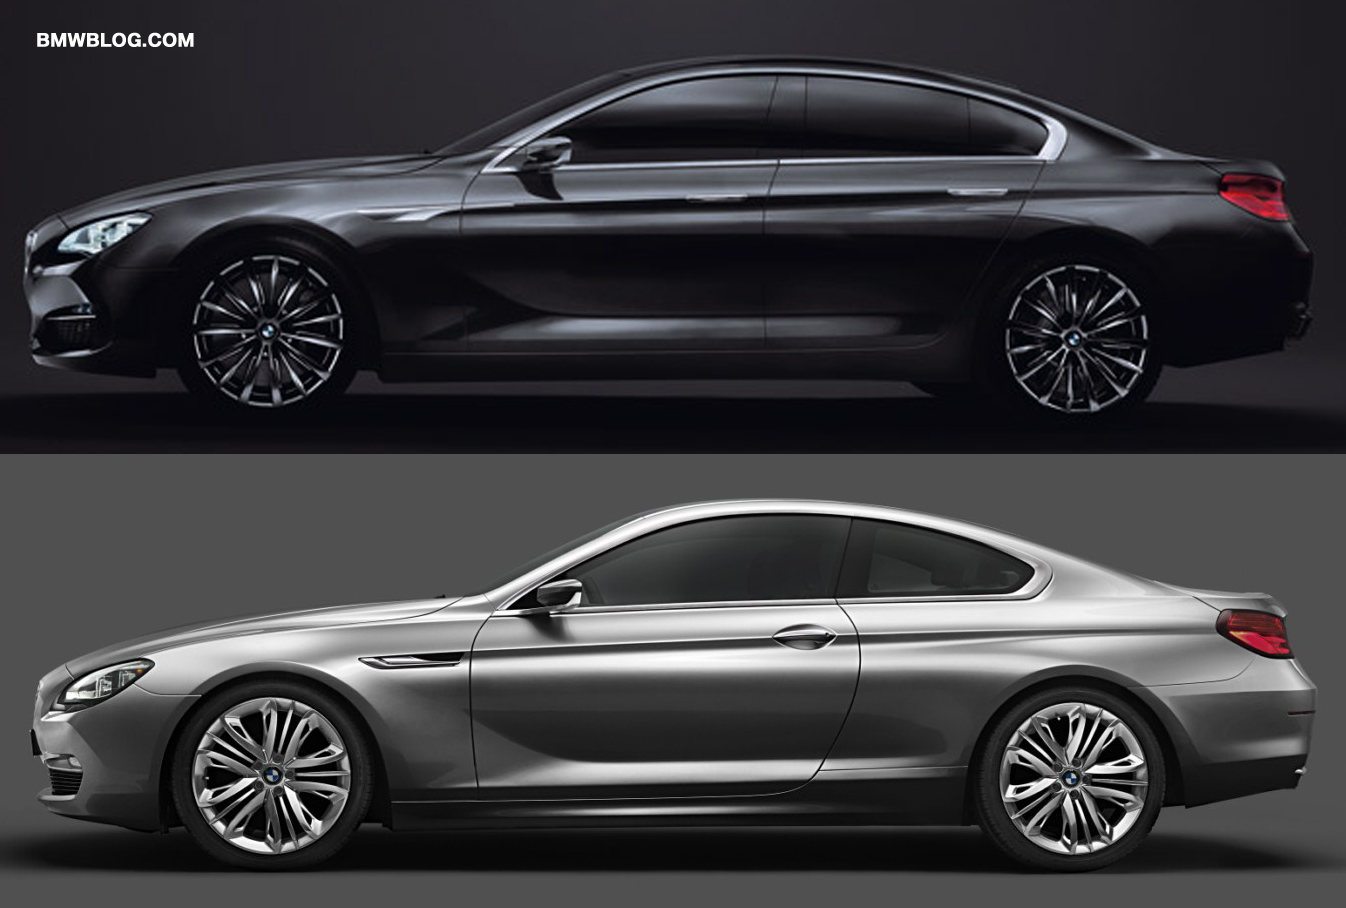 photo comparison bmw 6 series coupe vs bmw gran coupe. Black Bedroom Furniture Sets. Home Design Ideas